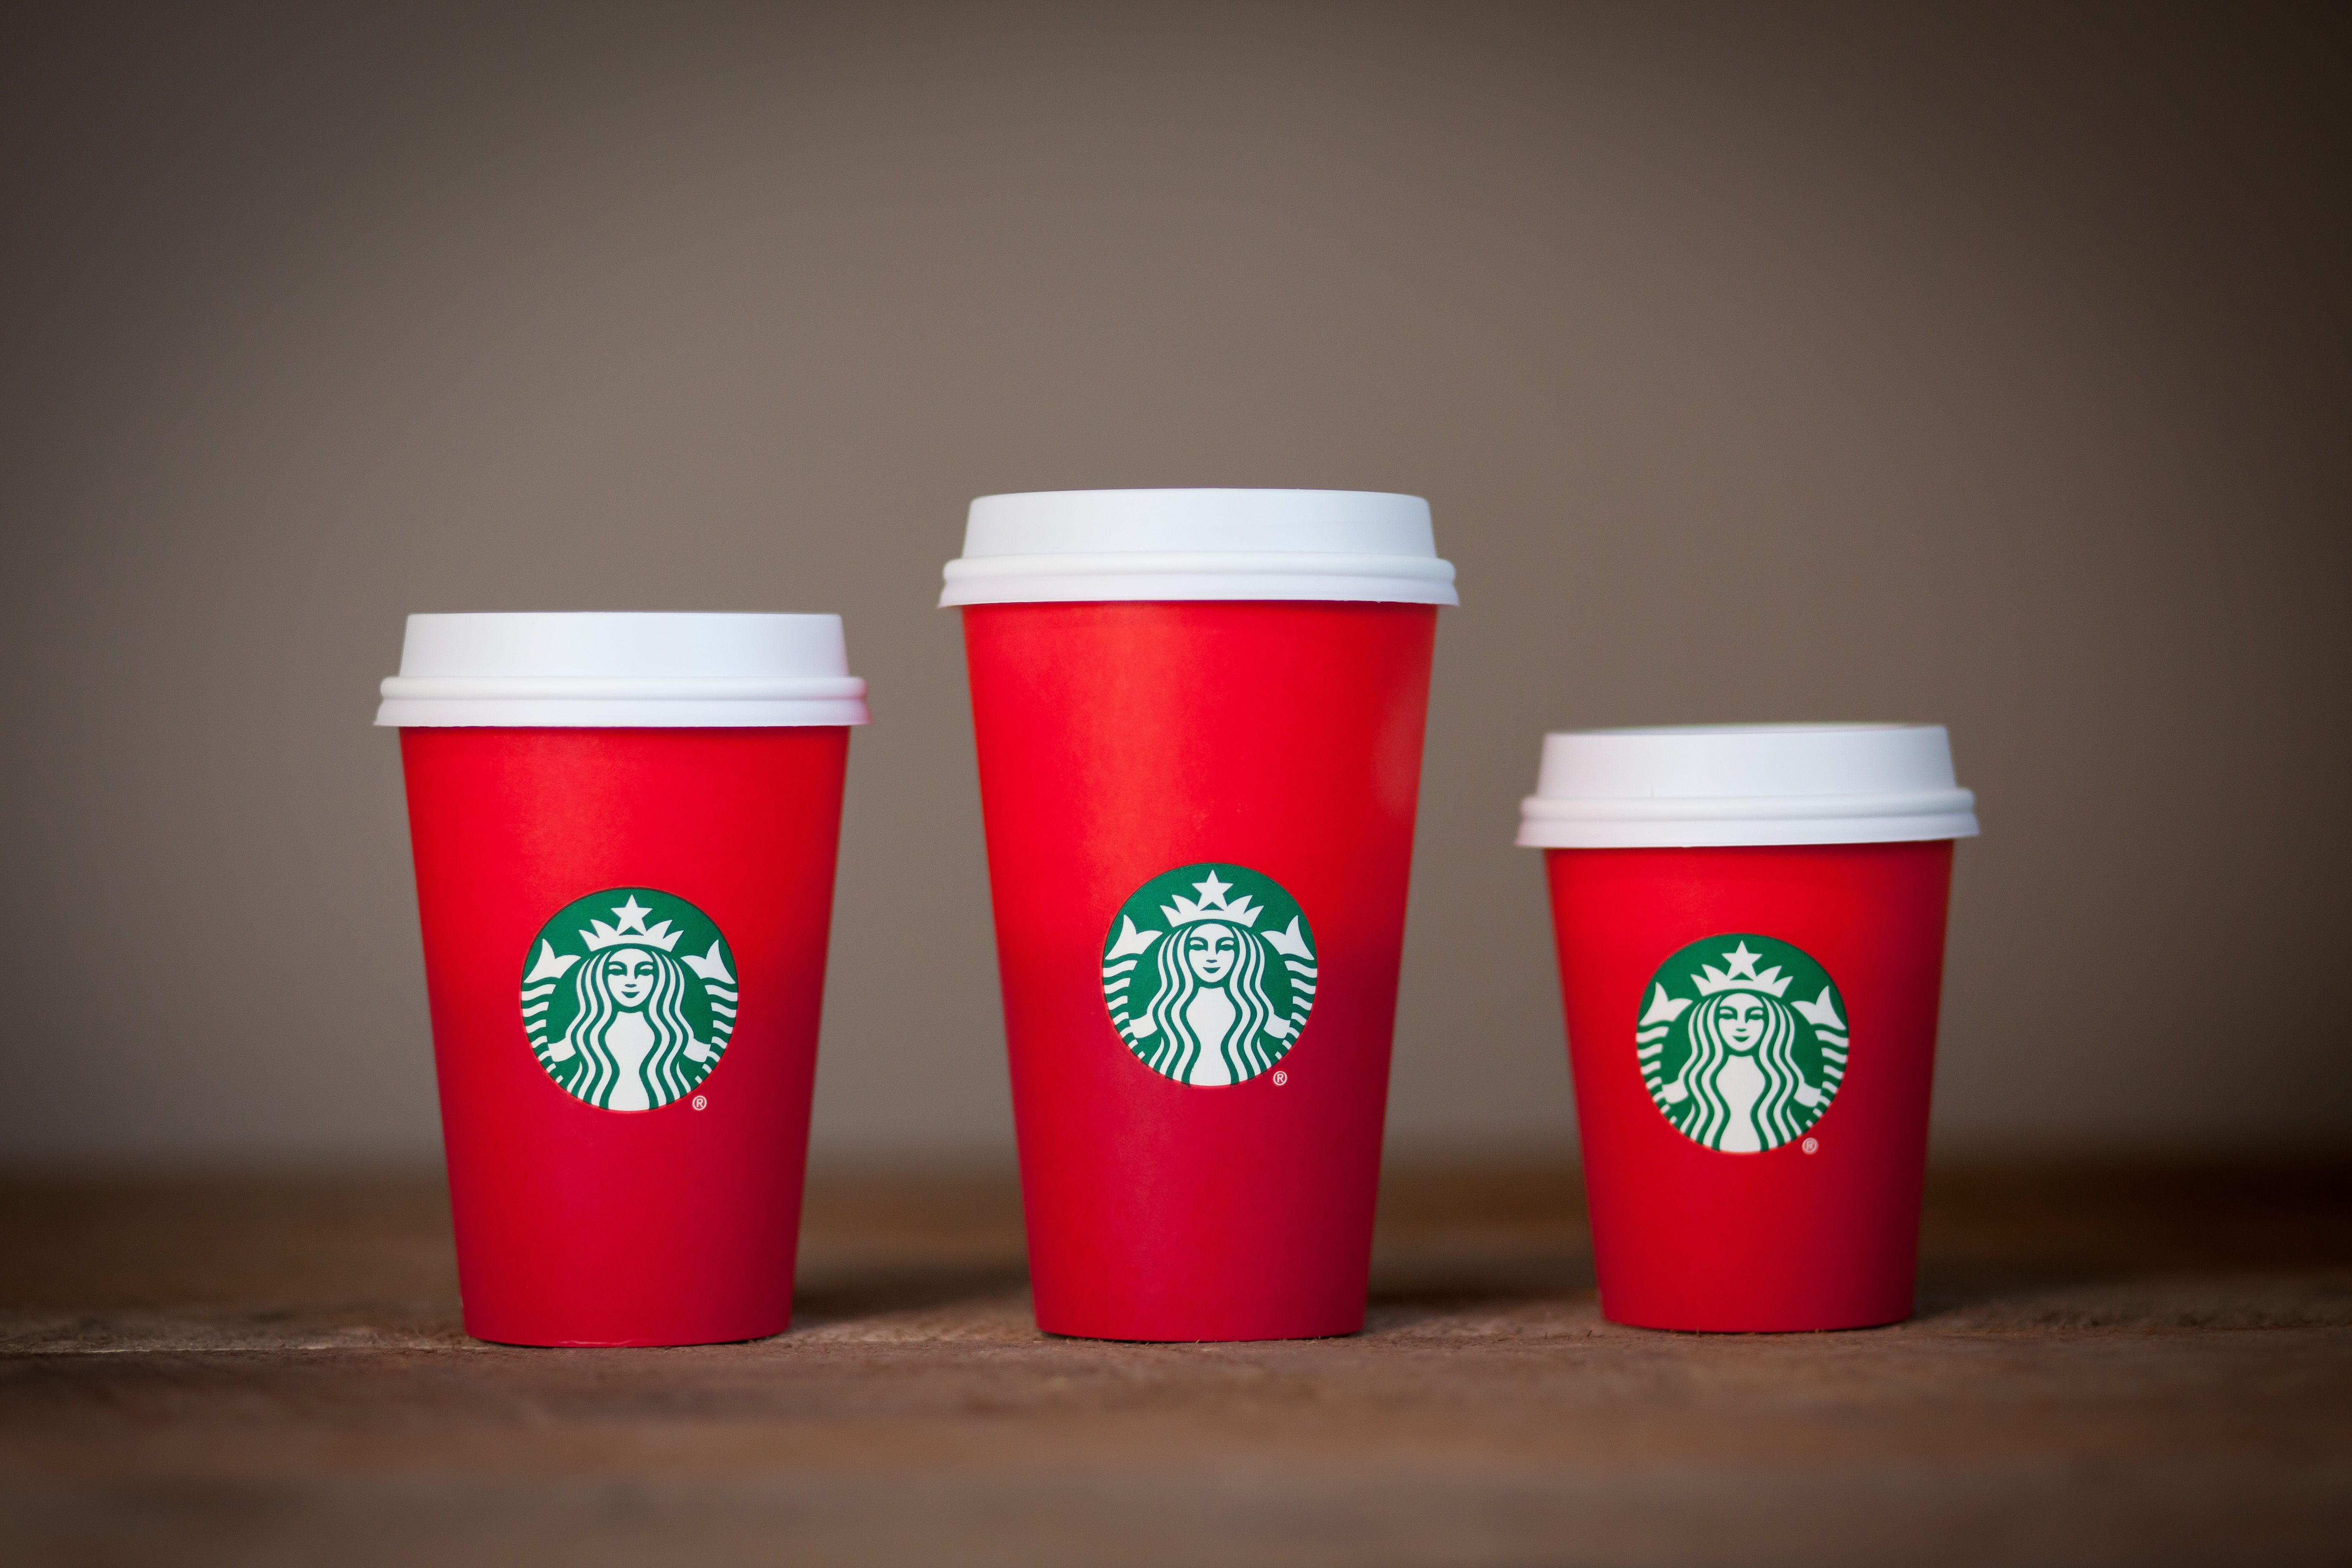 Starbucks Christmas cups 2017 - here's what they might look like ...